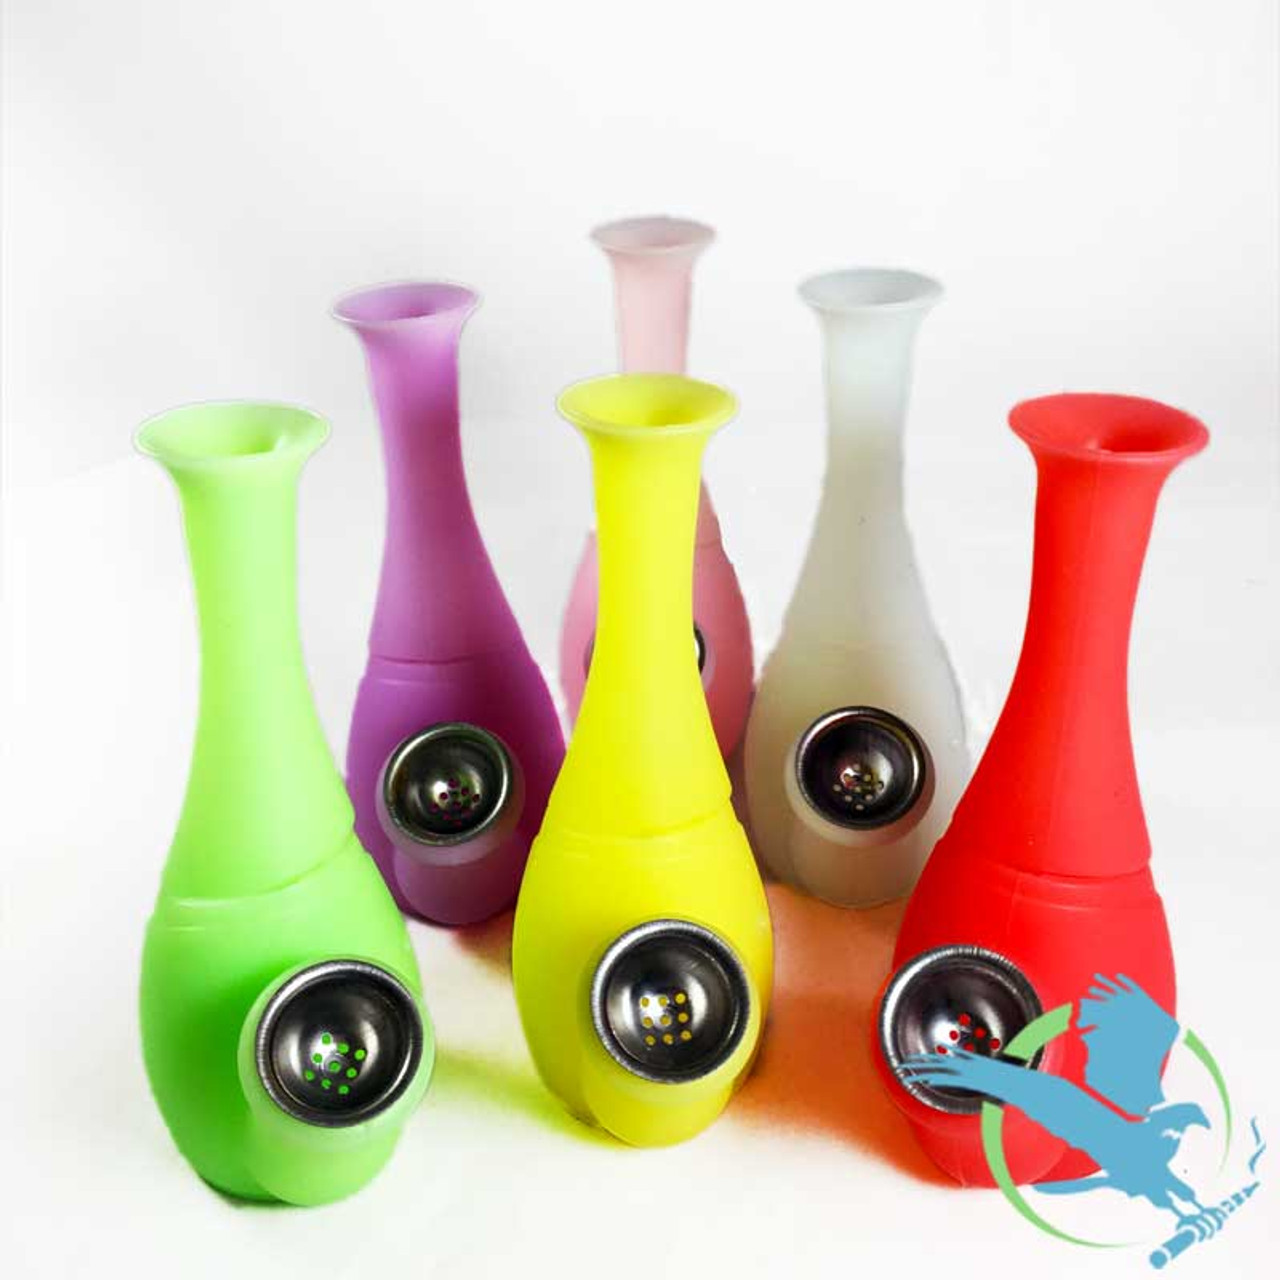 Silicone Mini Vase Water Pipe With Metal Bowl 6 Inches Msrp